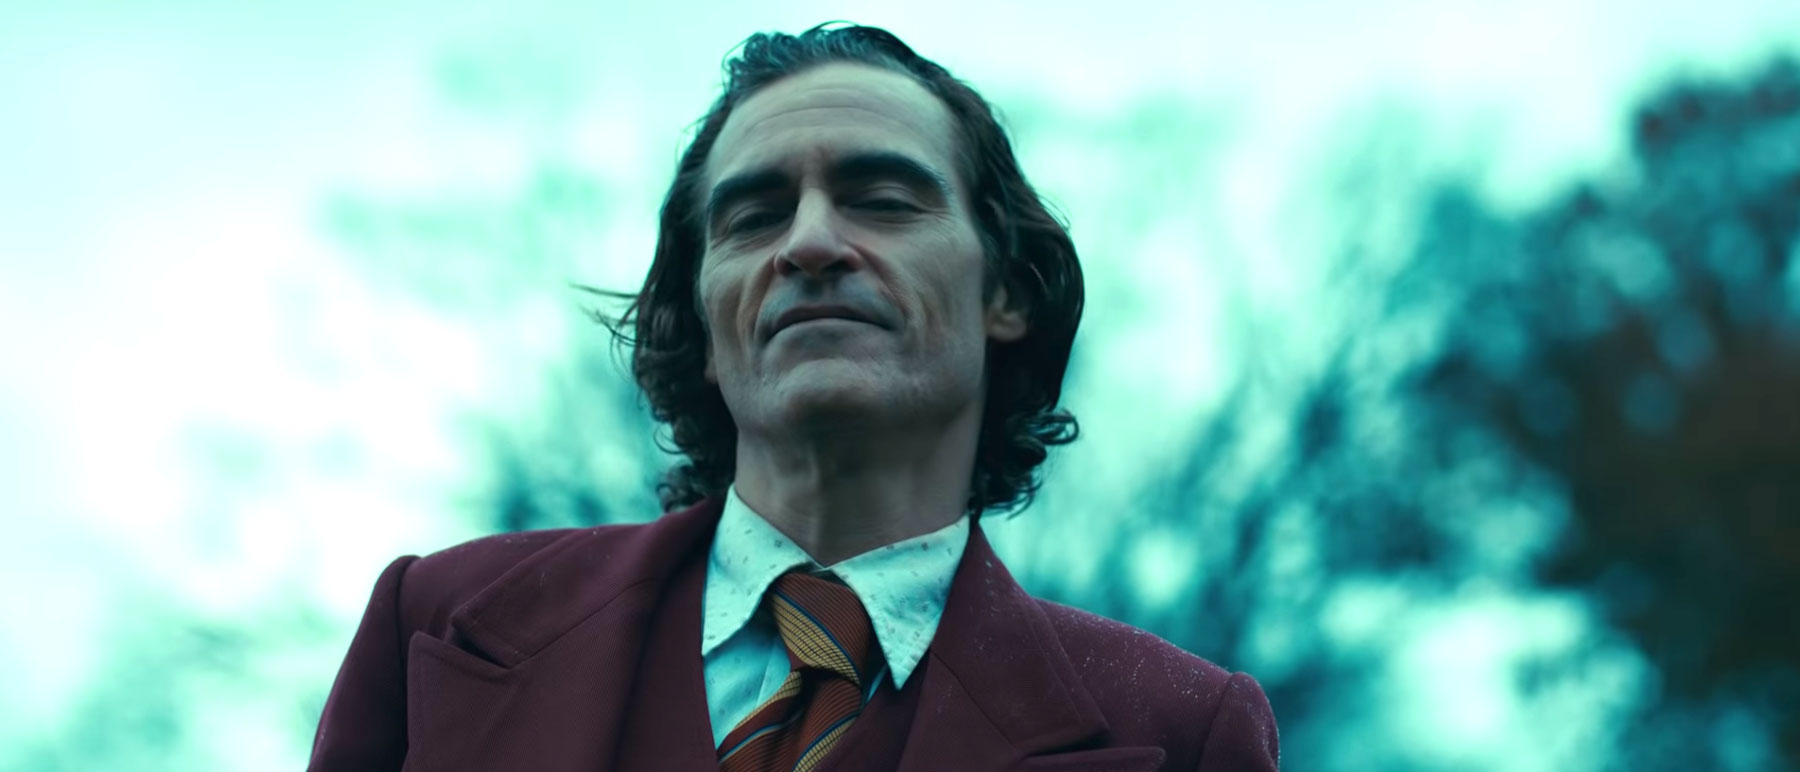 Joaquin Phoenix as Arthur Fleck in Joker Box Office